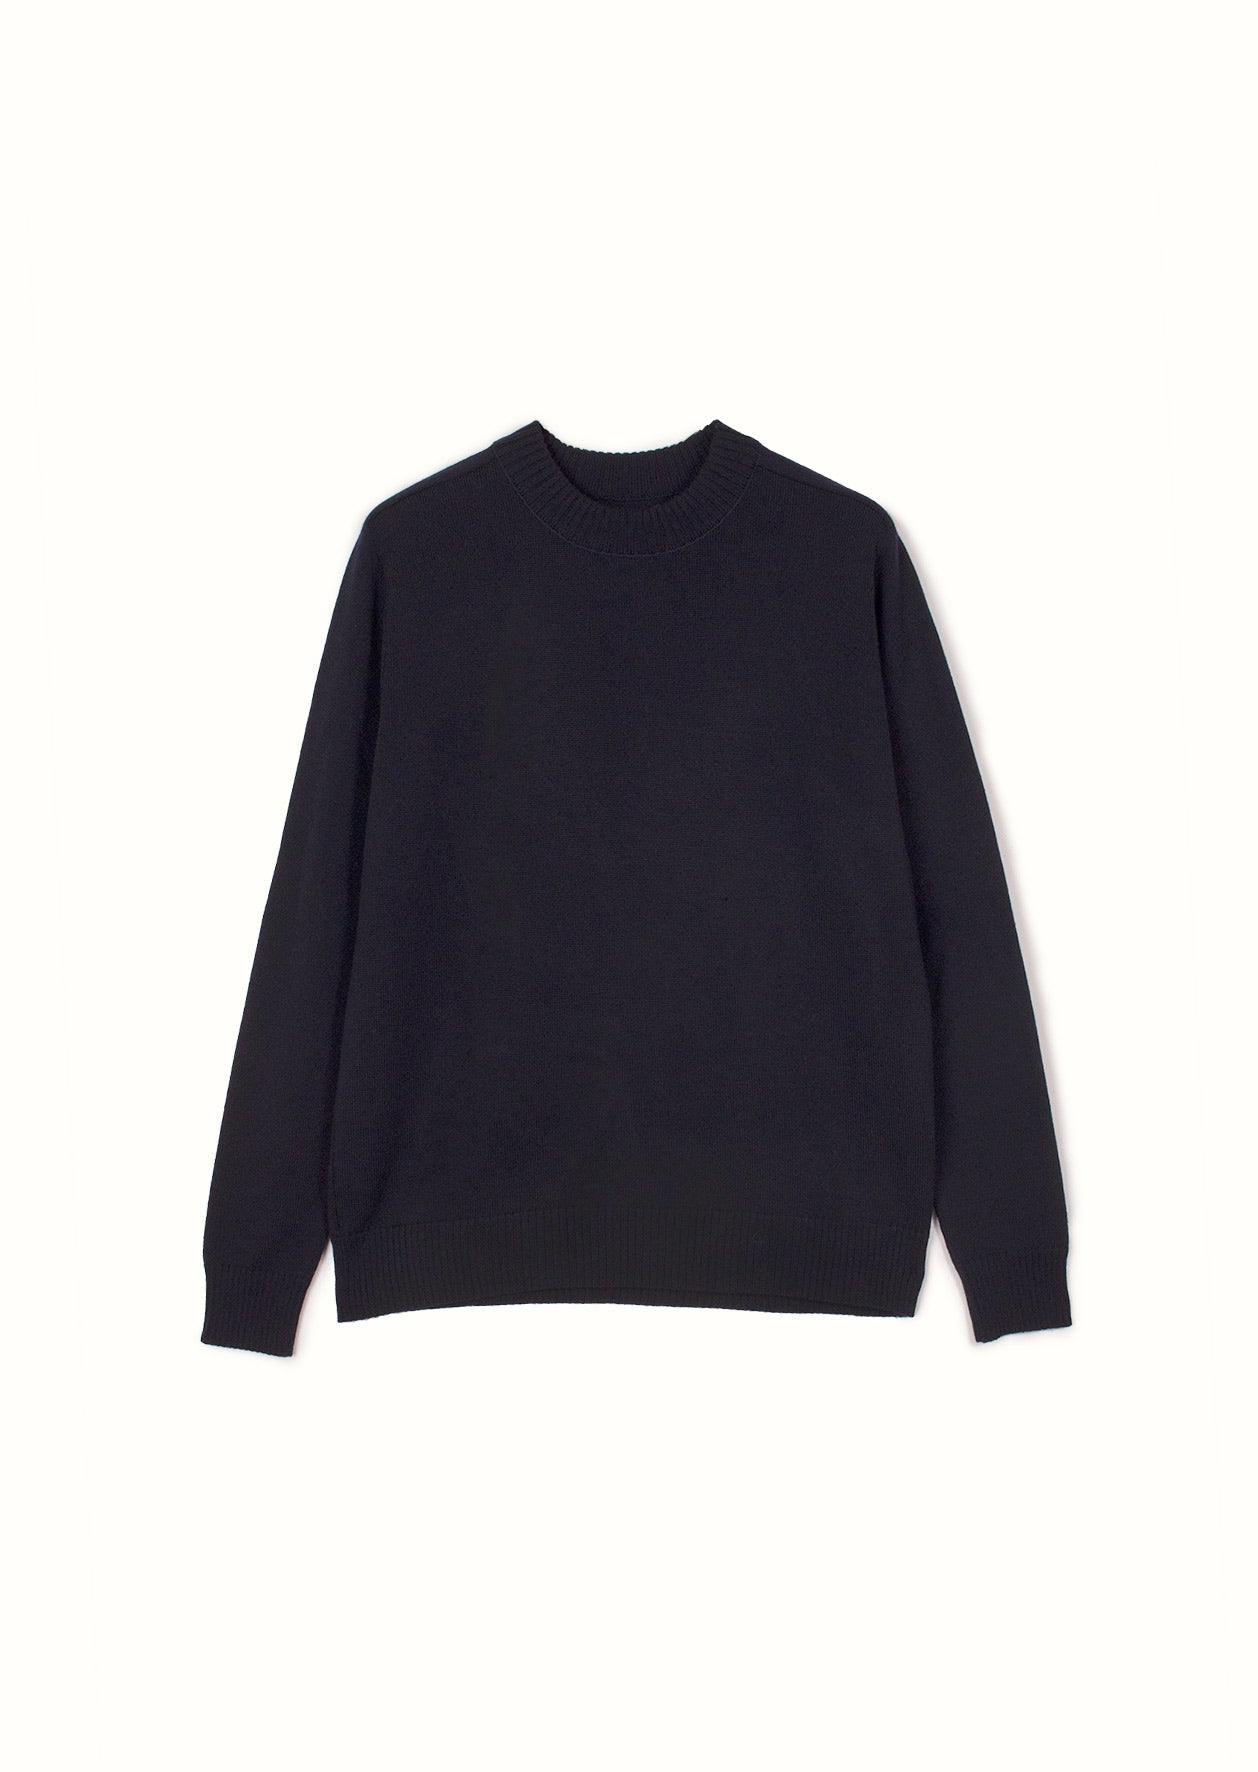 De Bonne Facture - Mock neck knit - Merino wool - Navy